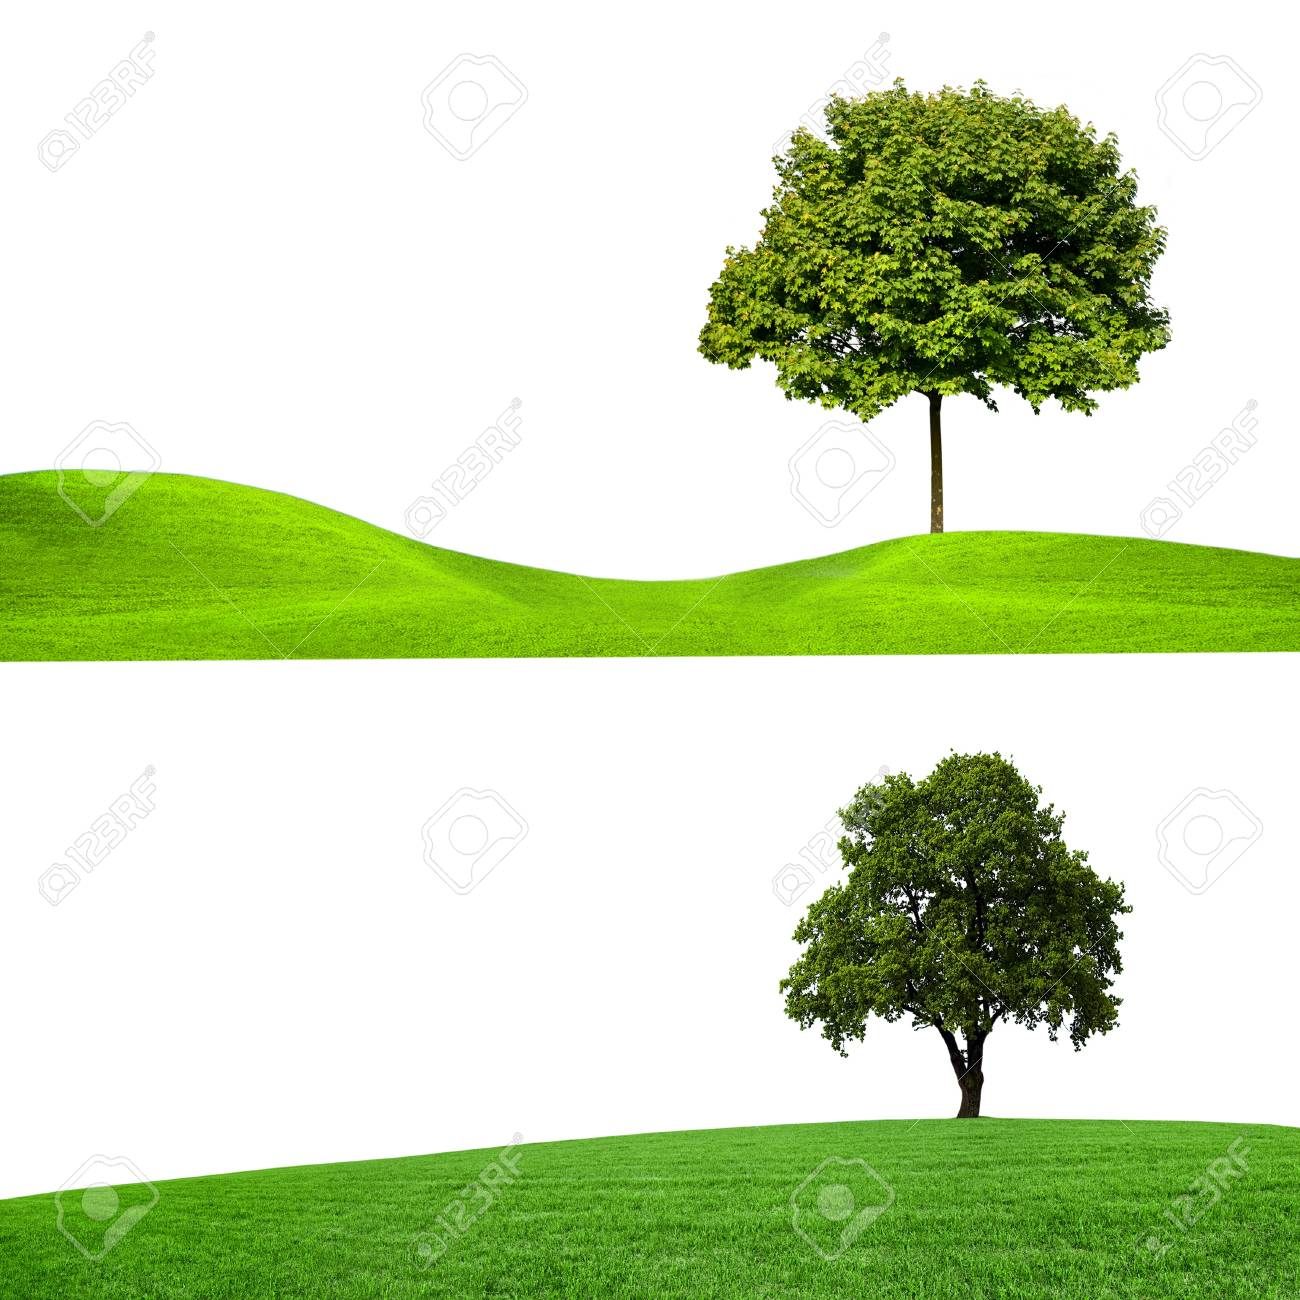 nature, banners Stock Photo - 10549136